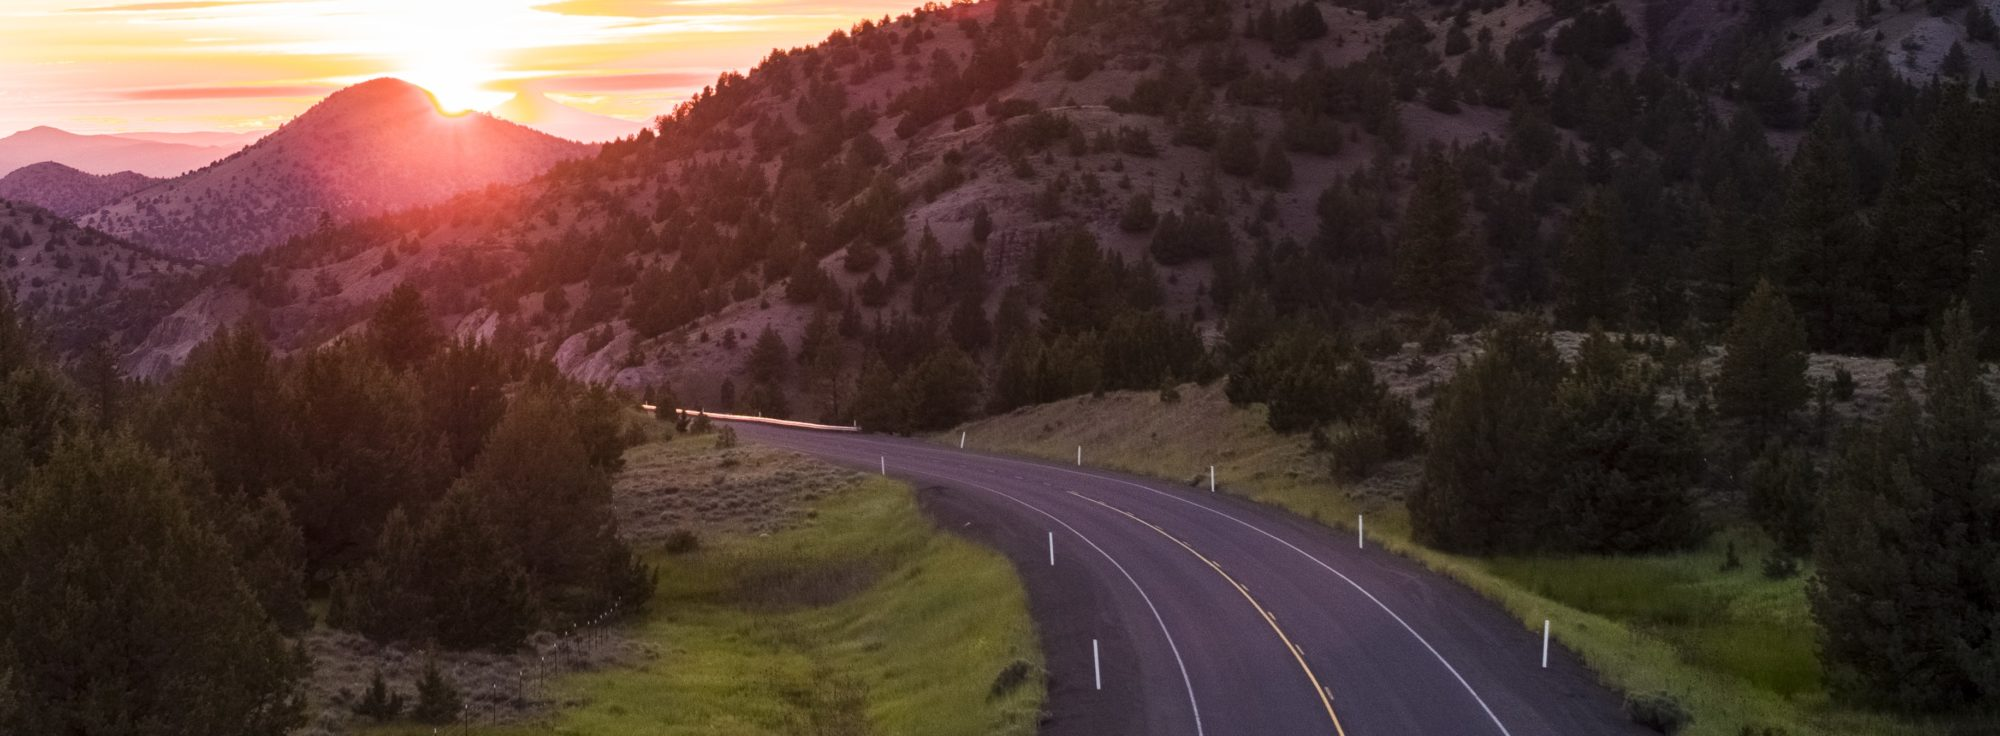 Road in Eastern Oregon with sunset in the distance.